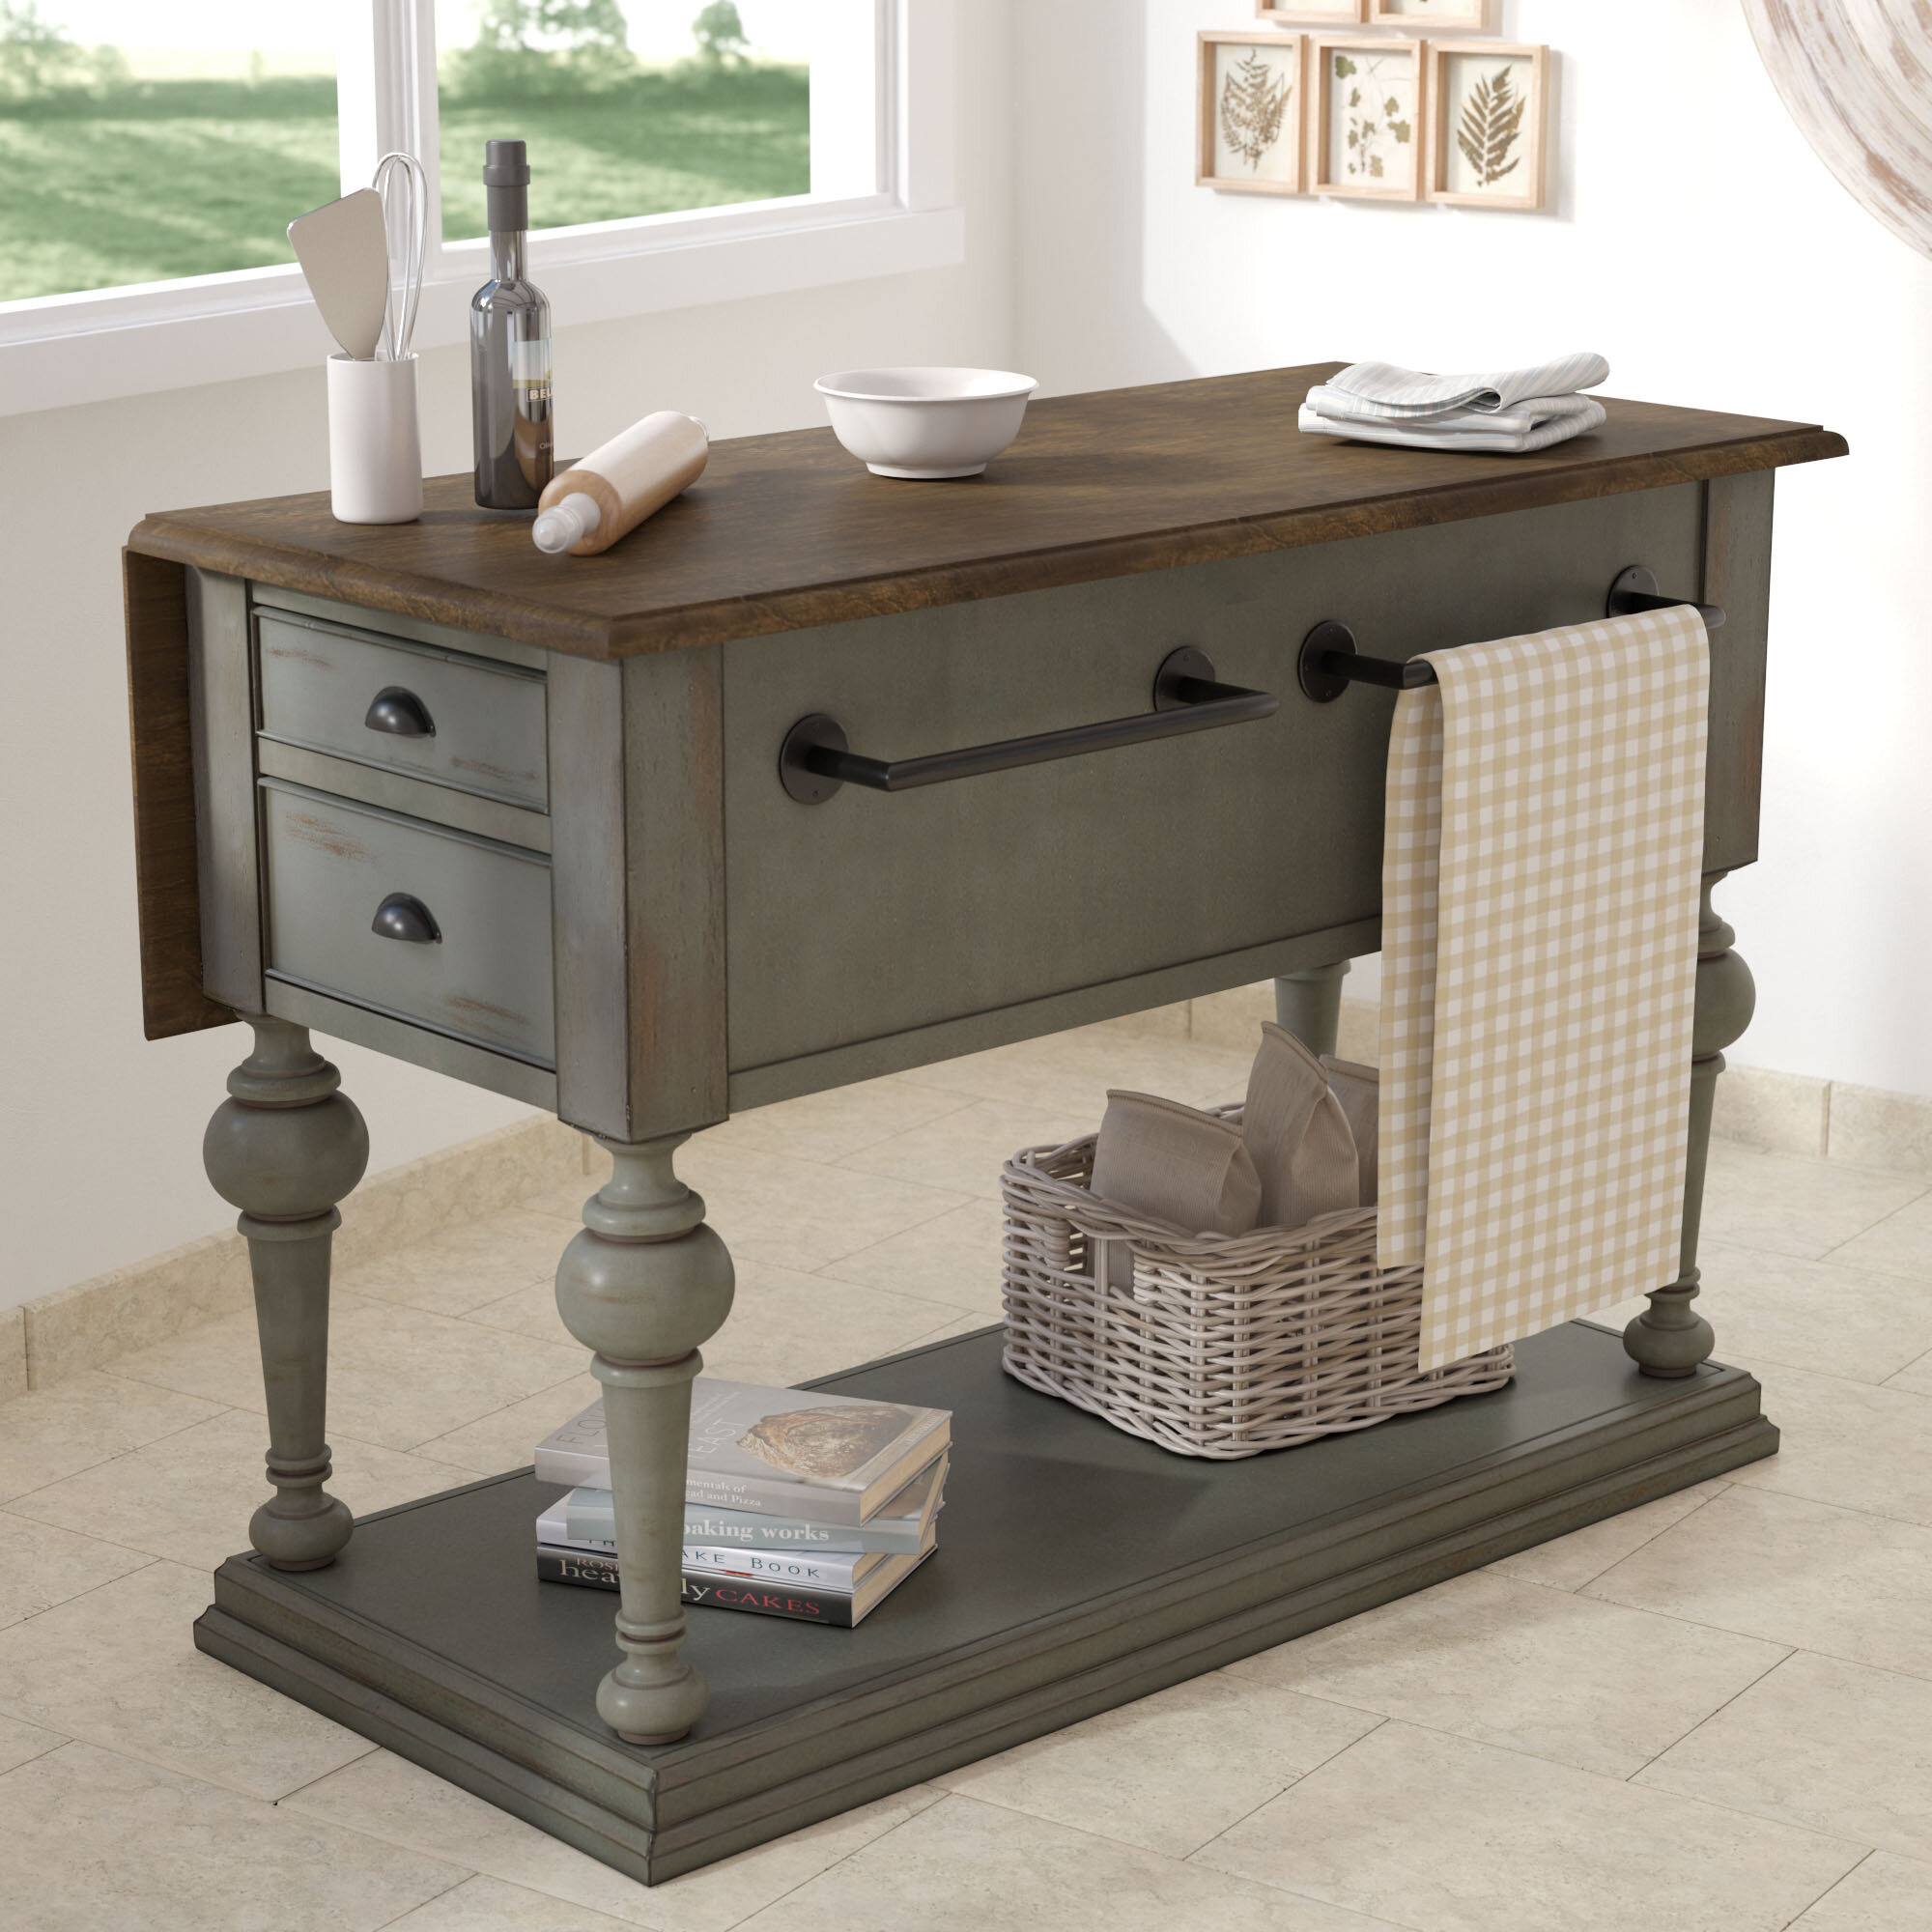 Lark Manor Serpentaire Kitchen Island with Wood Top & Reviews | Wayfair